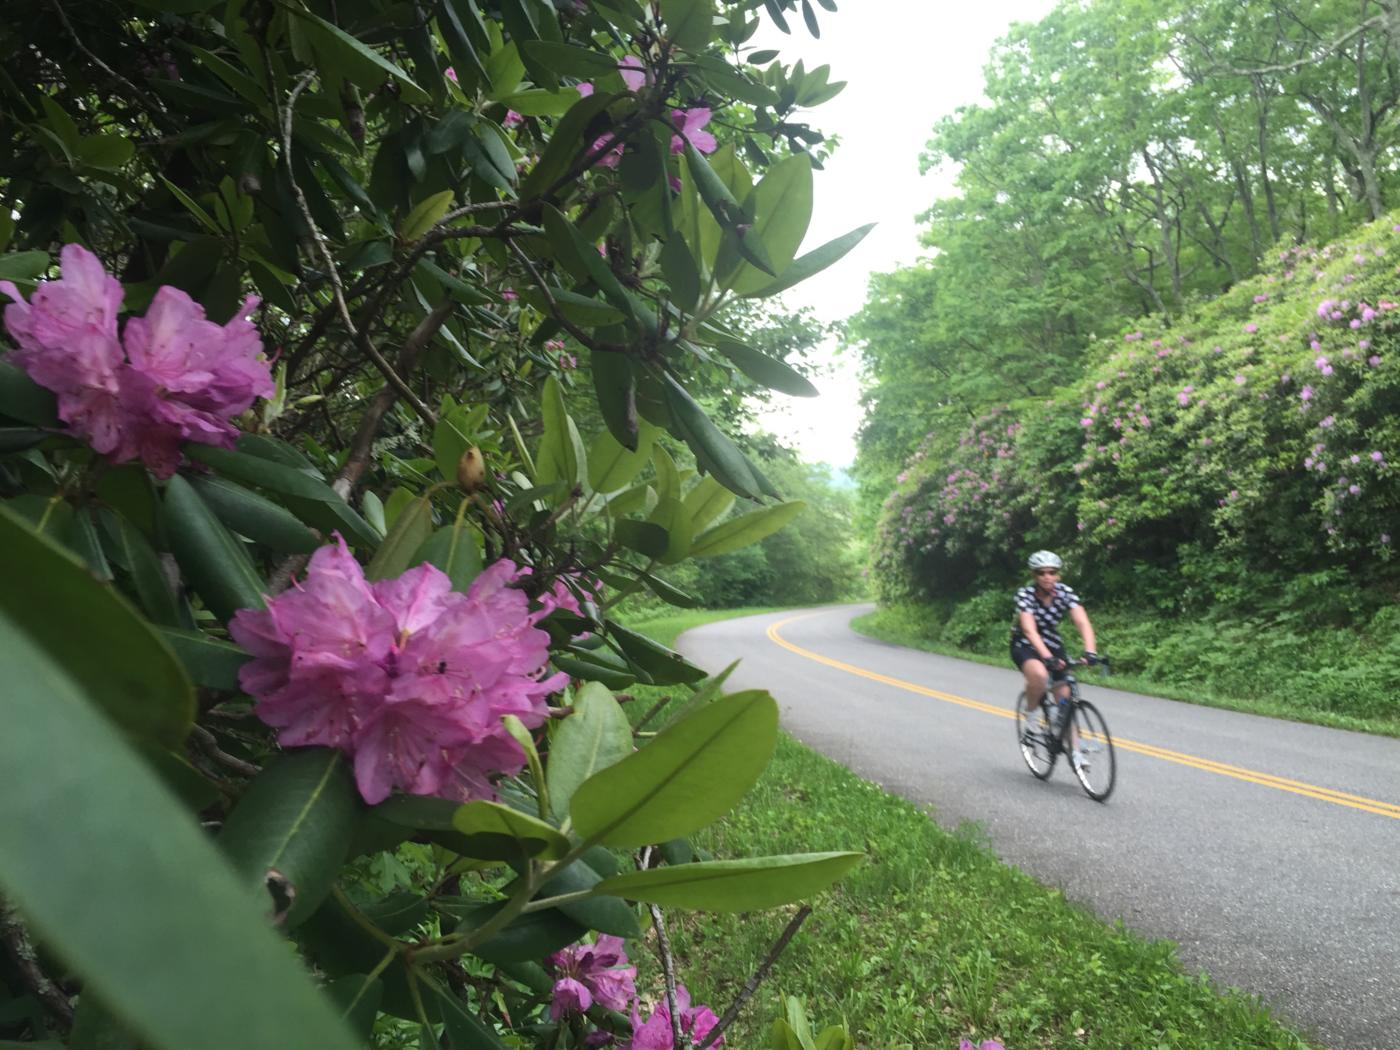 Rhododendron blooming on the Blue Ridge Parkway as Mary descends toward the Peaks of Otter.